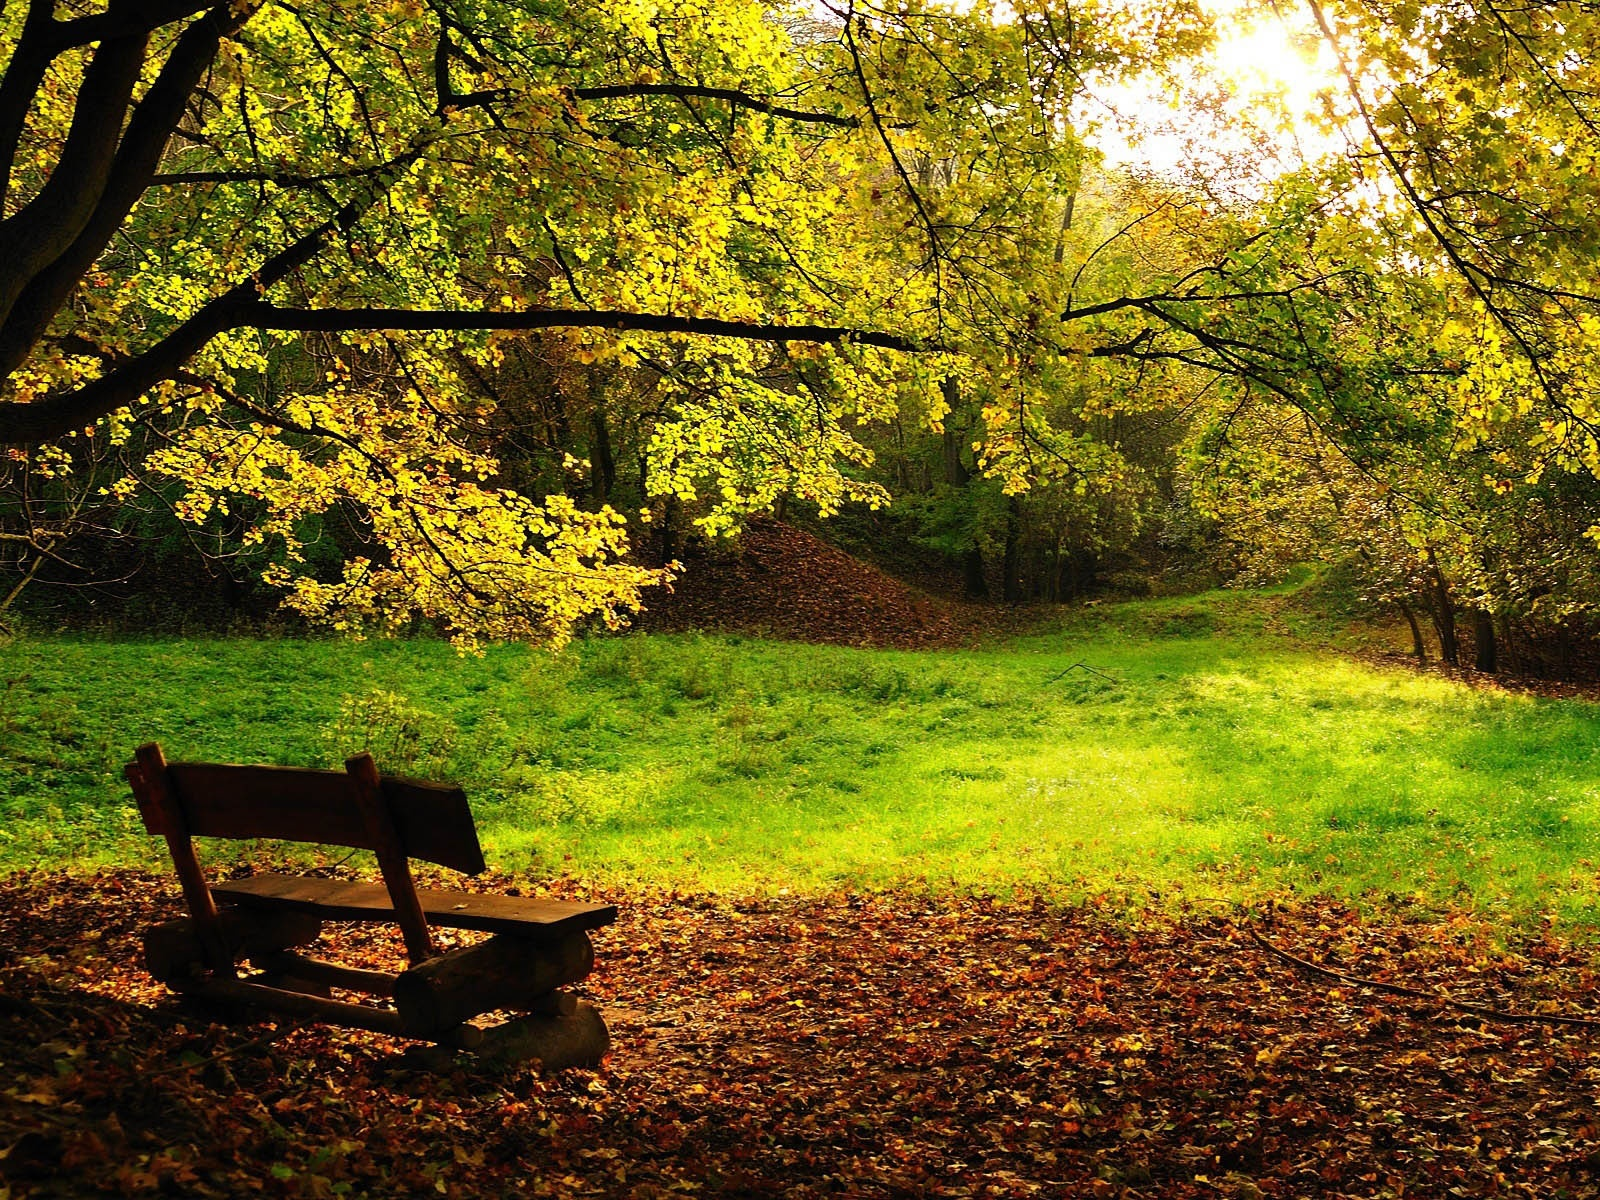 Man Made - Bench  - Tree - Trees Wallpaper